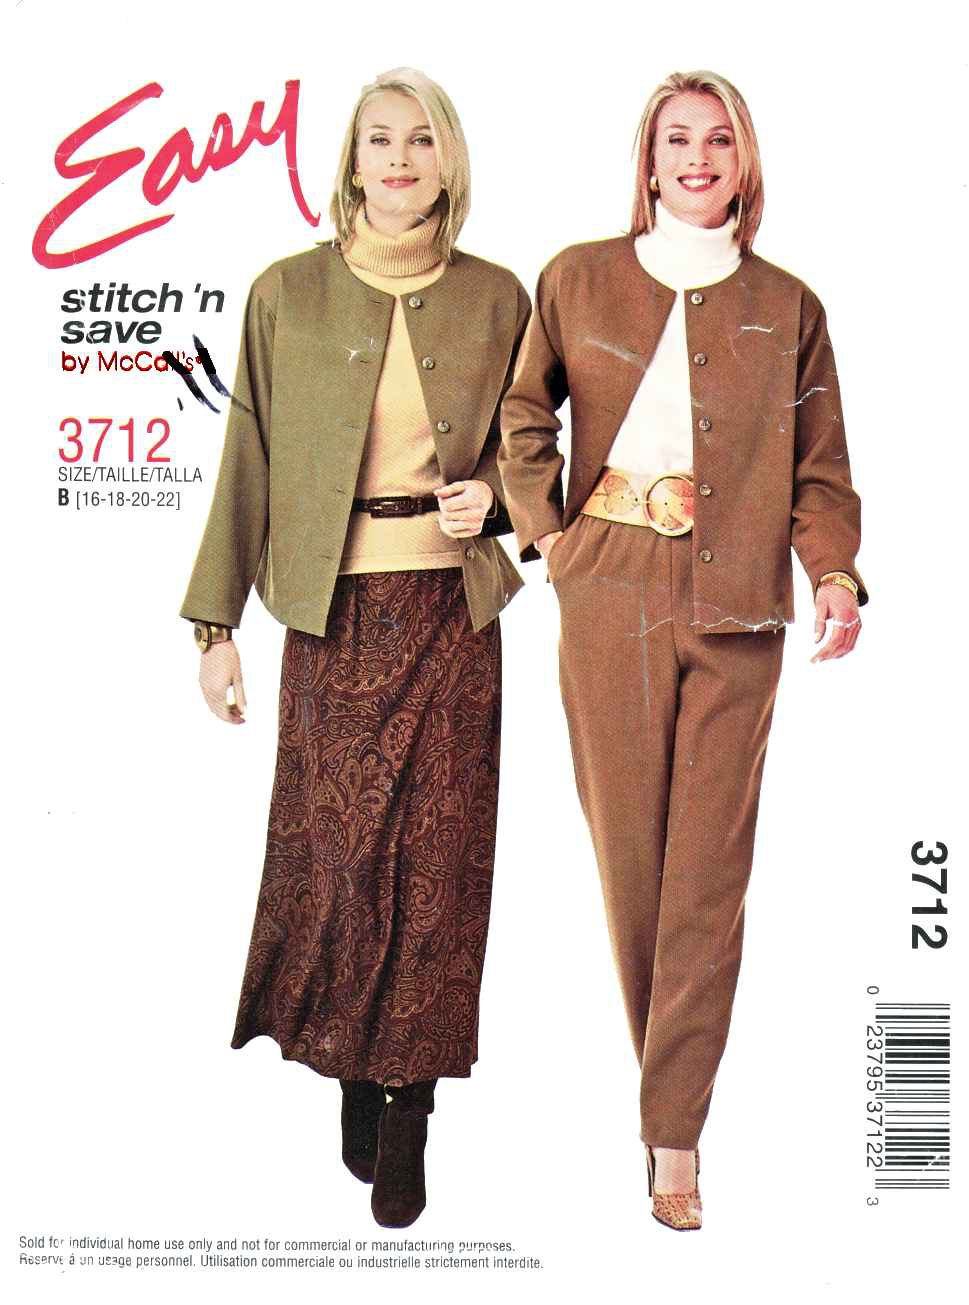 McCall's Sewing Pattern 3712 Misses Size 8-14 Easy Button Front Jacket Flared Skirt Pull On Pants